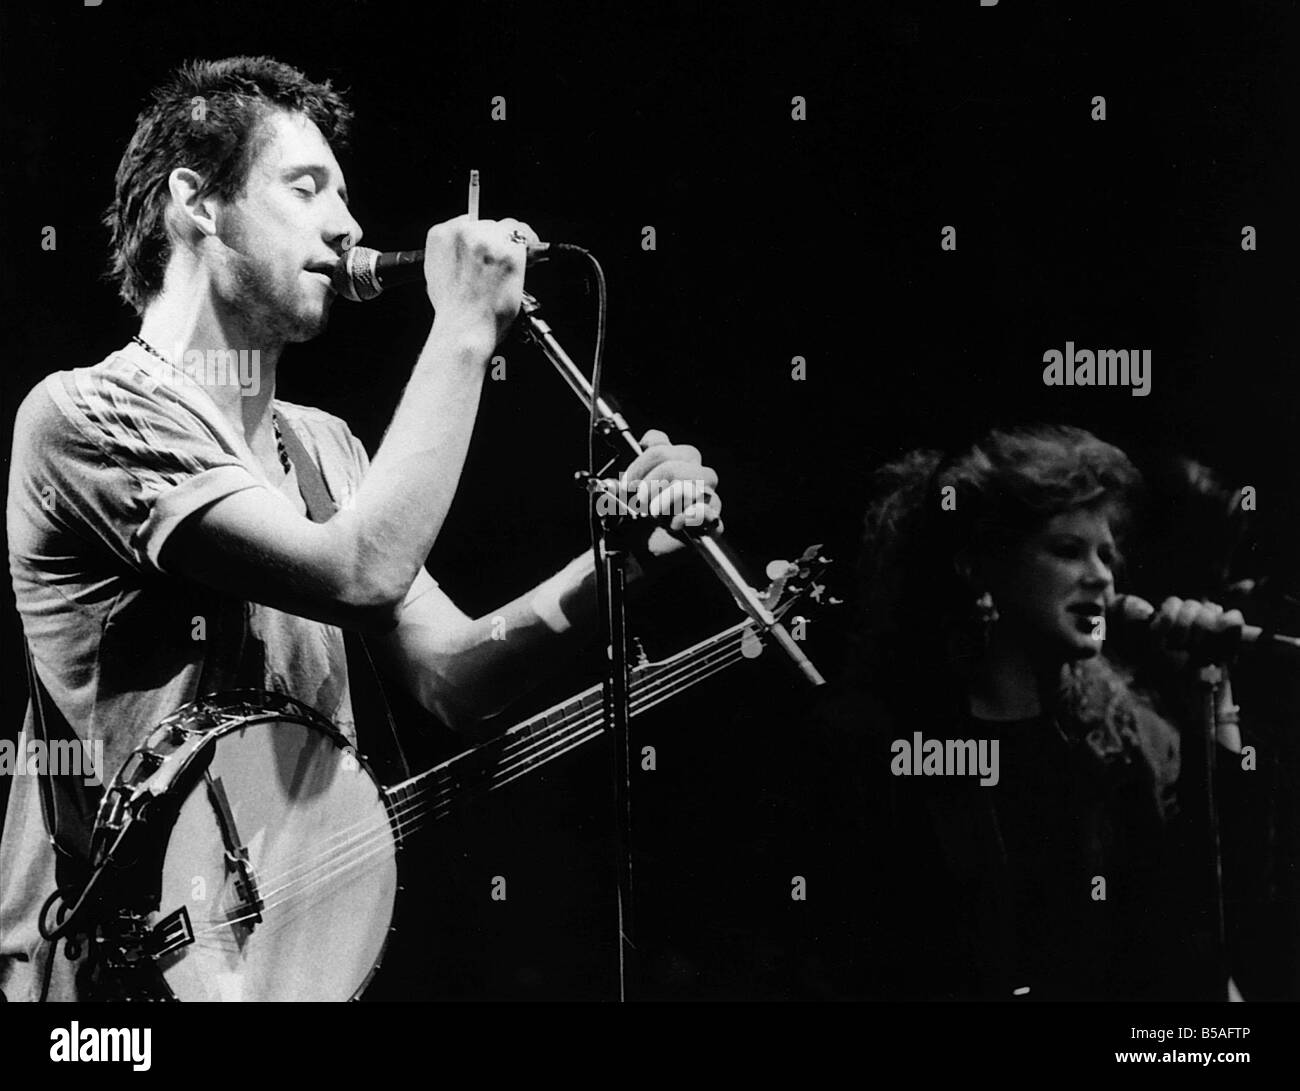 Shane MacGowan Irish pop singer The Pogues on stage 1988 with Kirsty MacColl - Stock Image